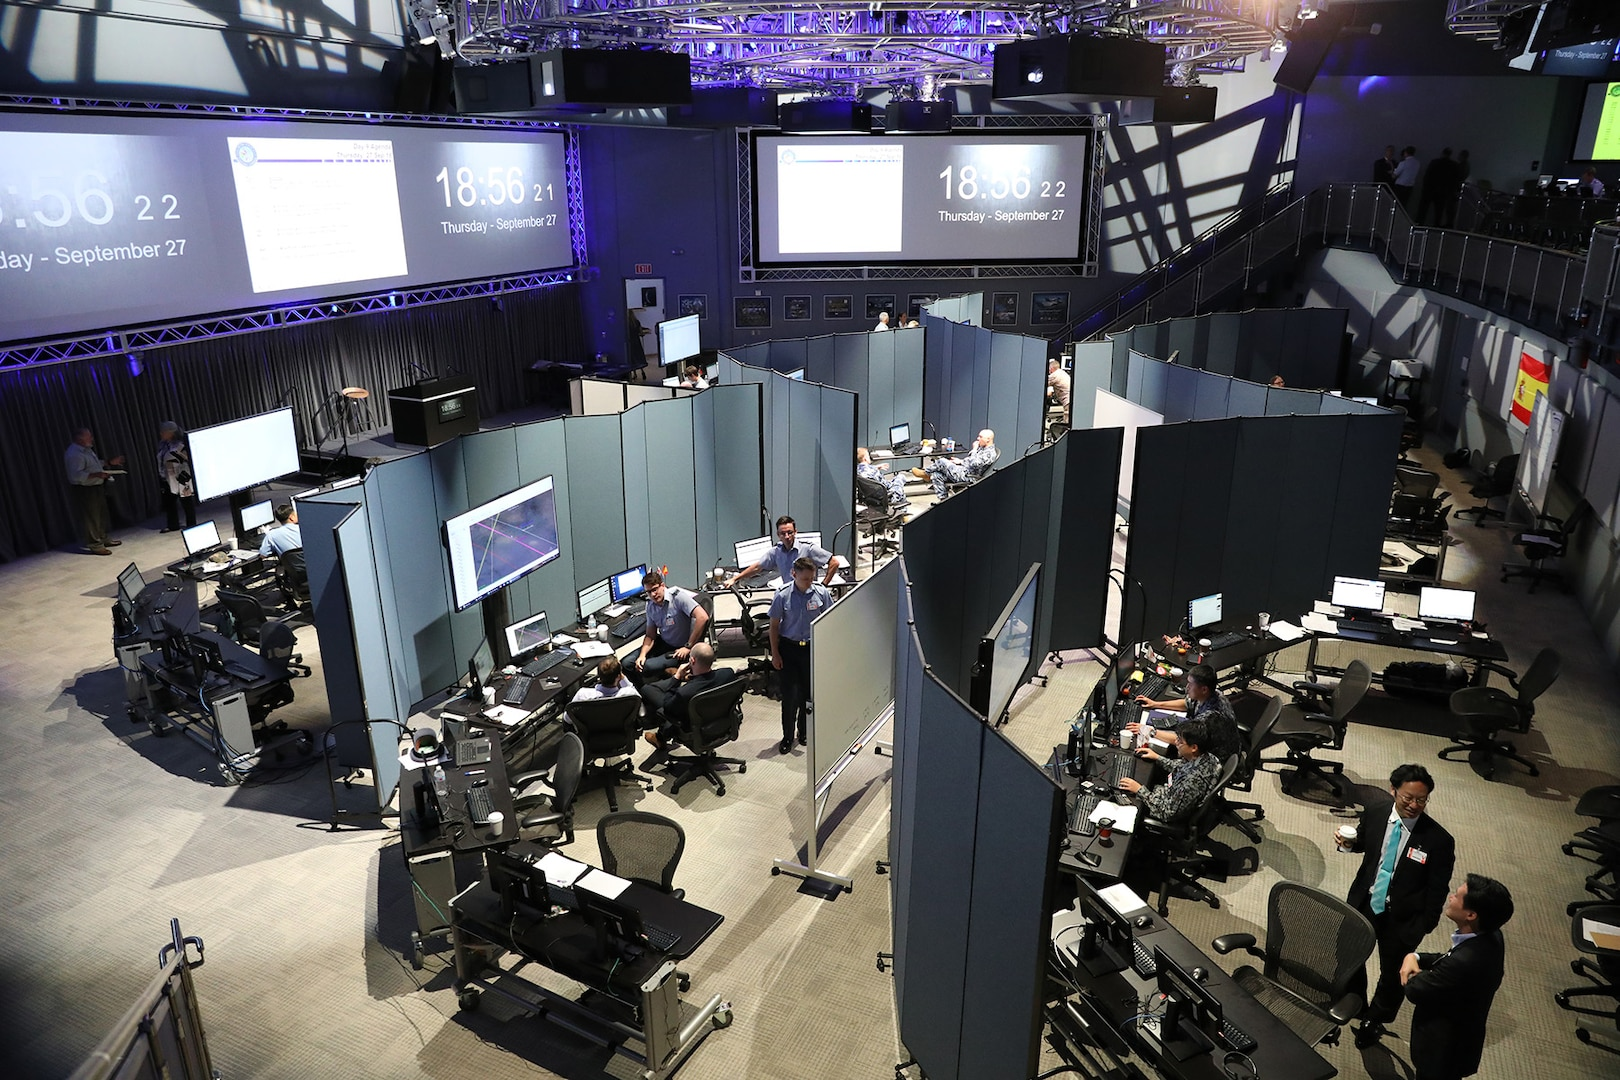 Participants conduct simulated space operations during the fifth international space experiment, Global Sentinel 2018 (GS 18), Sept. 19-28, at the Lockheed Martin Center for Innovation in Suffolk, Virginia. The event provided an opportunity to develop and implement processes for partners from Australia, Canada, France, Germany, Italy, Japan, the Republic of Korea, Spain, the United Kingdom, the United States, and commercial entities to collaborate on combined space situational awareness (SSA) operations in order to enhance the quality and availability of satellite tracking information.